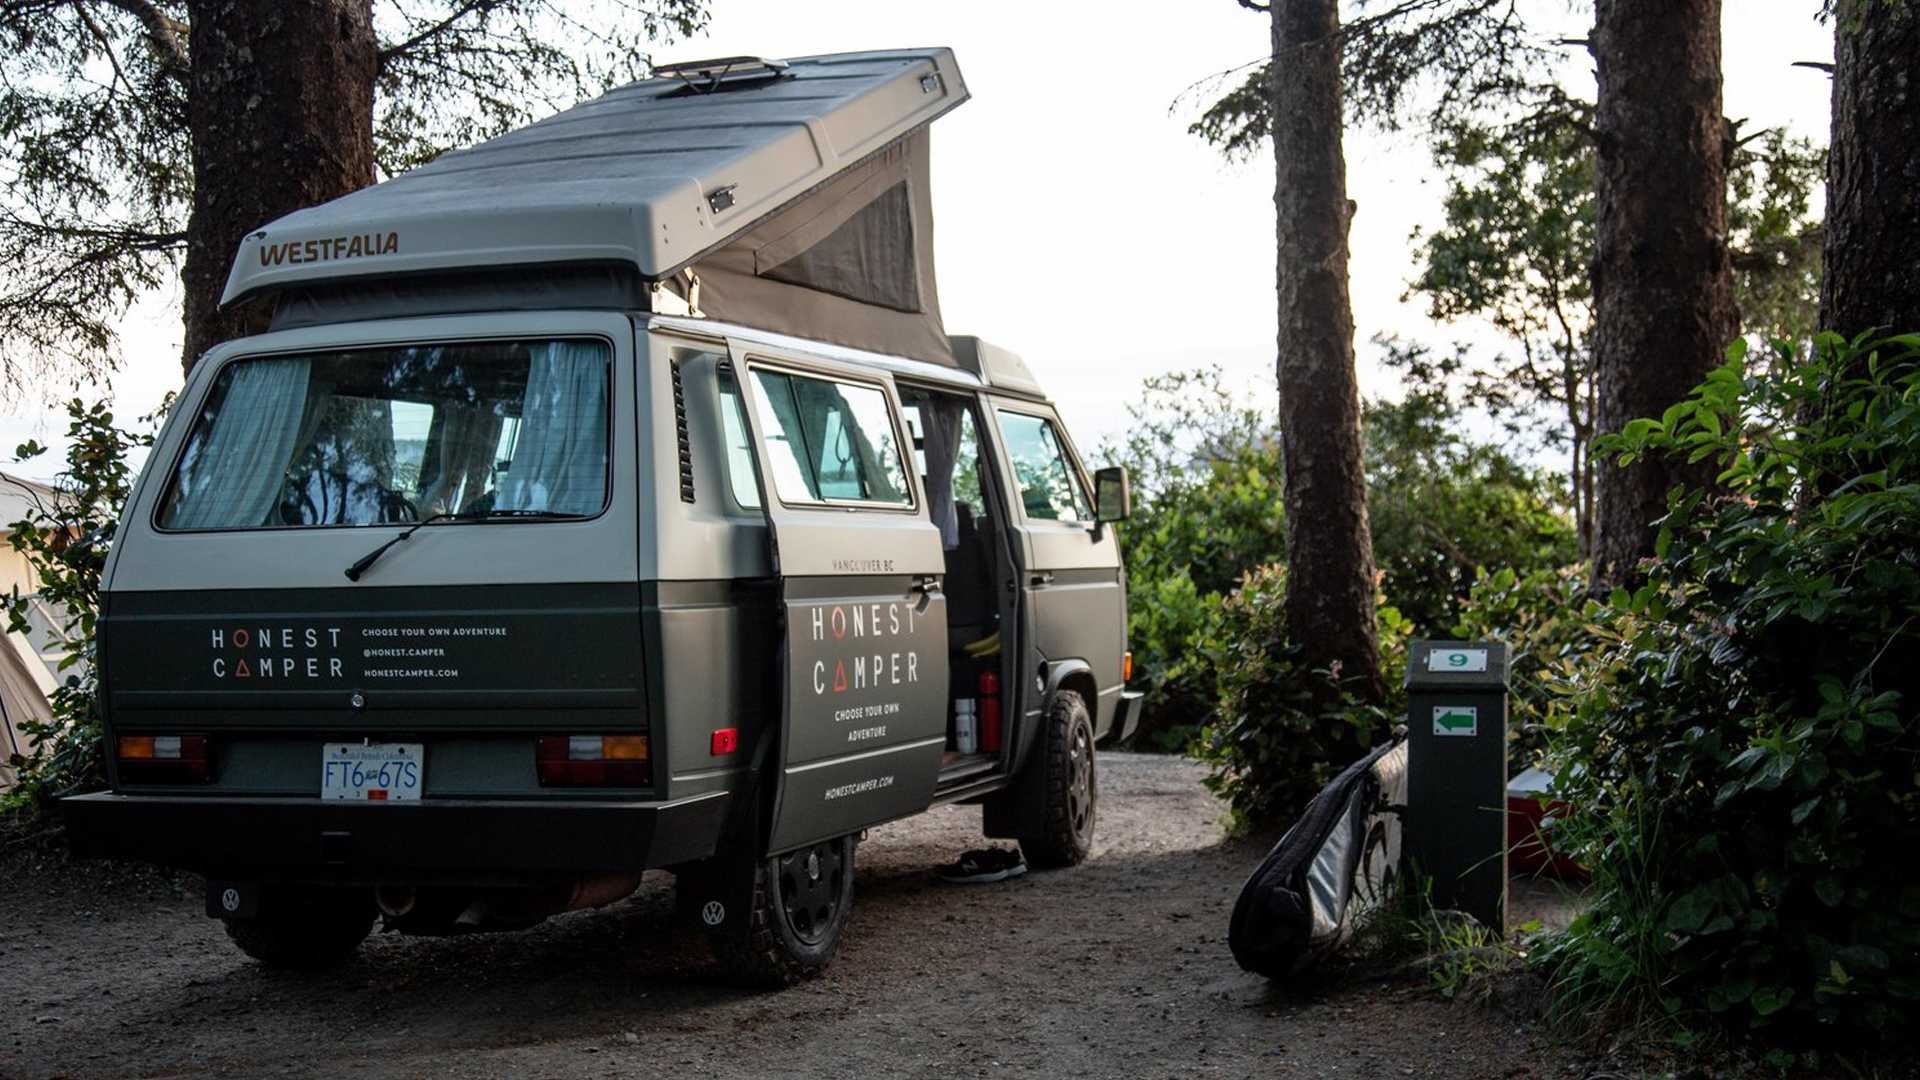 Enjoy Instant Vanlife With Retro Vw Westfalia Camper Rental